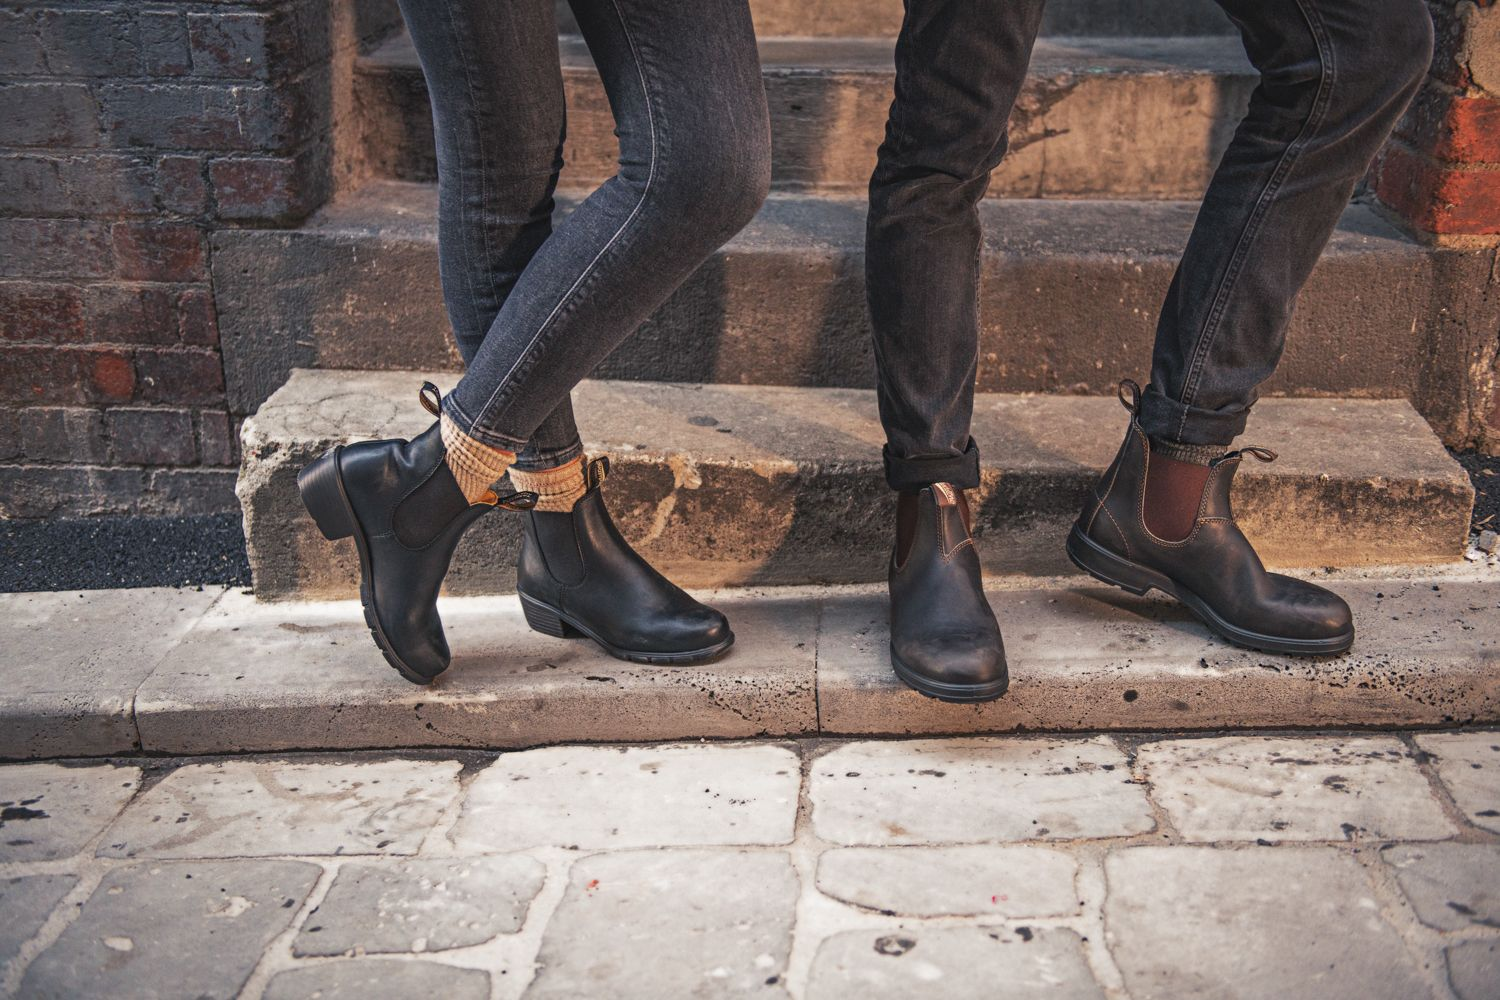 Blundstone 500 Ah The Classic Blunny In Stout Brown You Really Can T Beat It The 500 Is The Iconic Boot That Springs To Boots Blundstone Blundstone Women